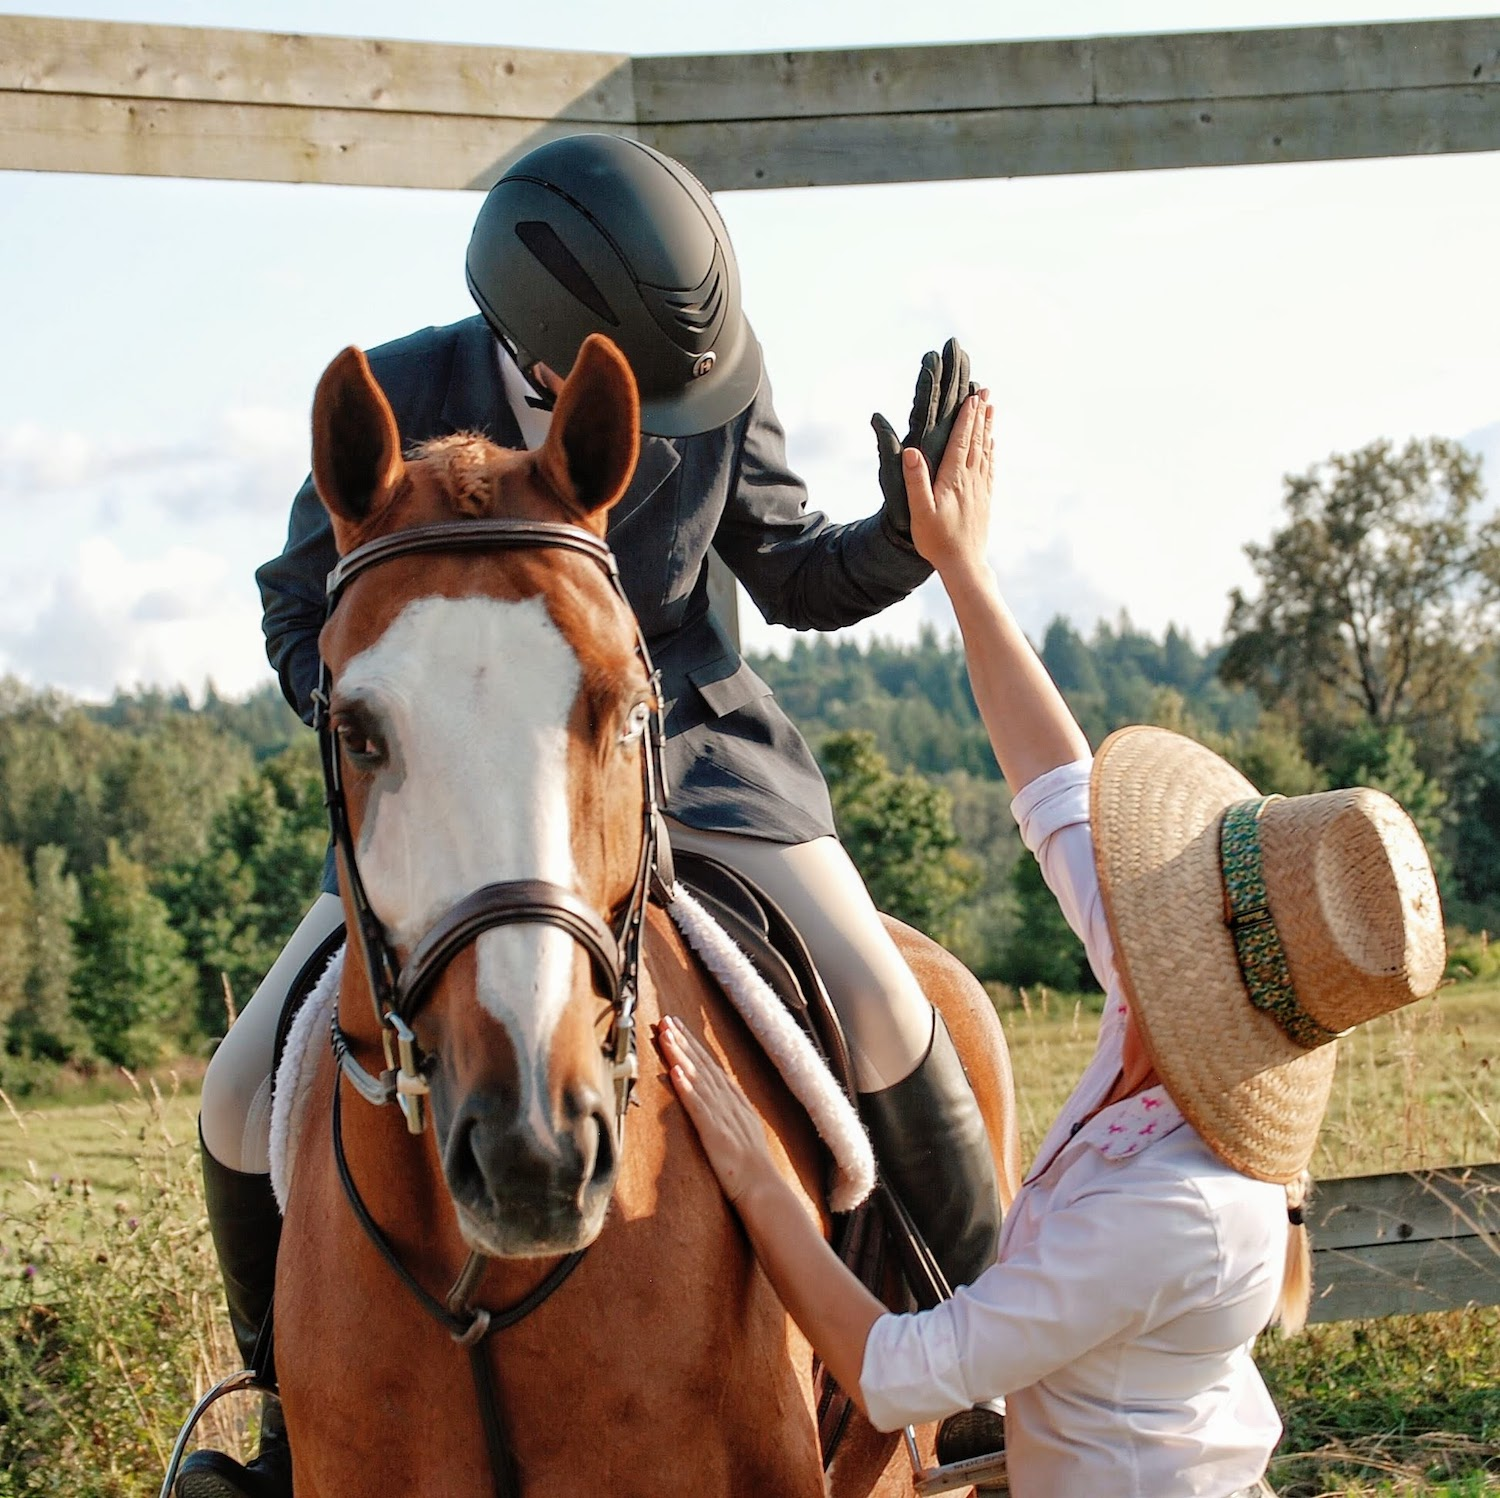 Woman high fives a rider on her horse